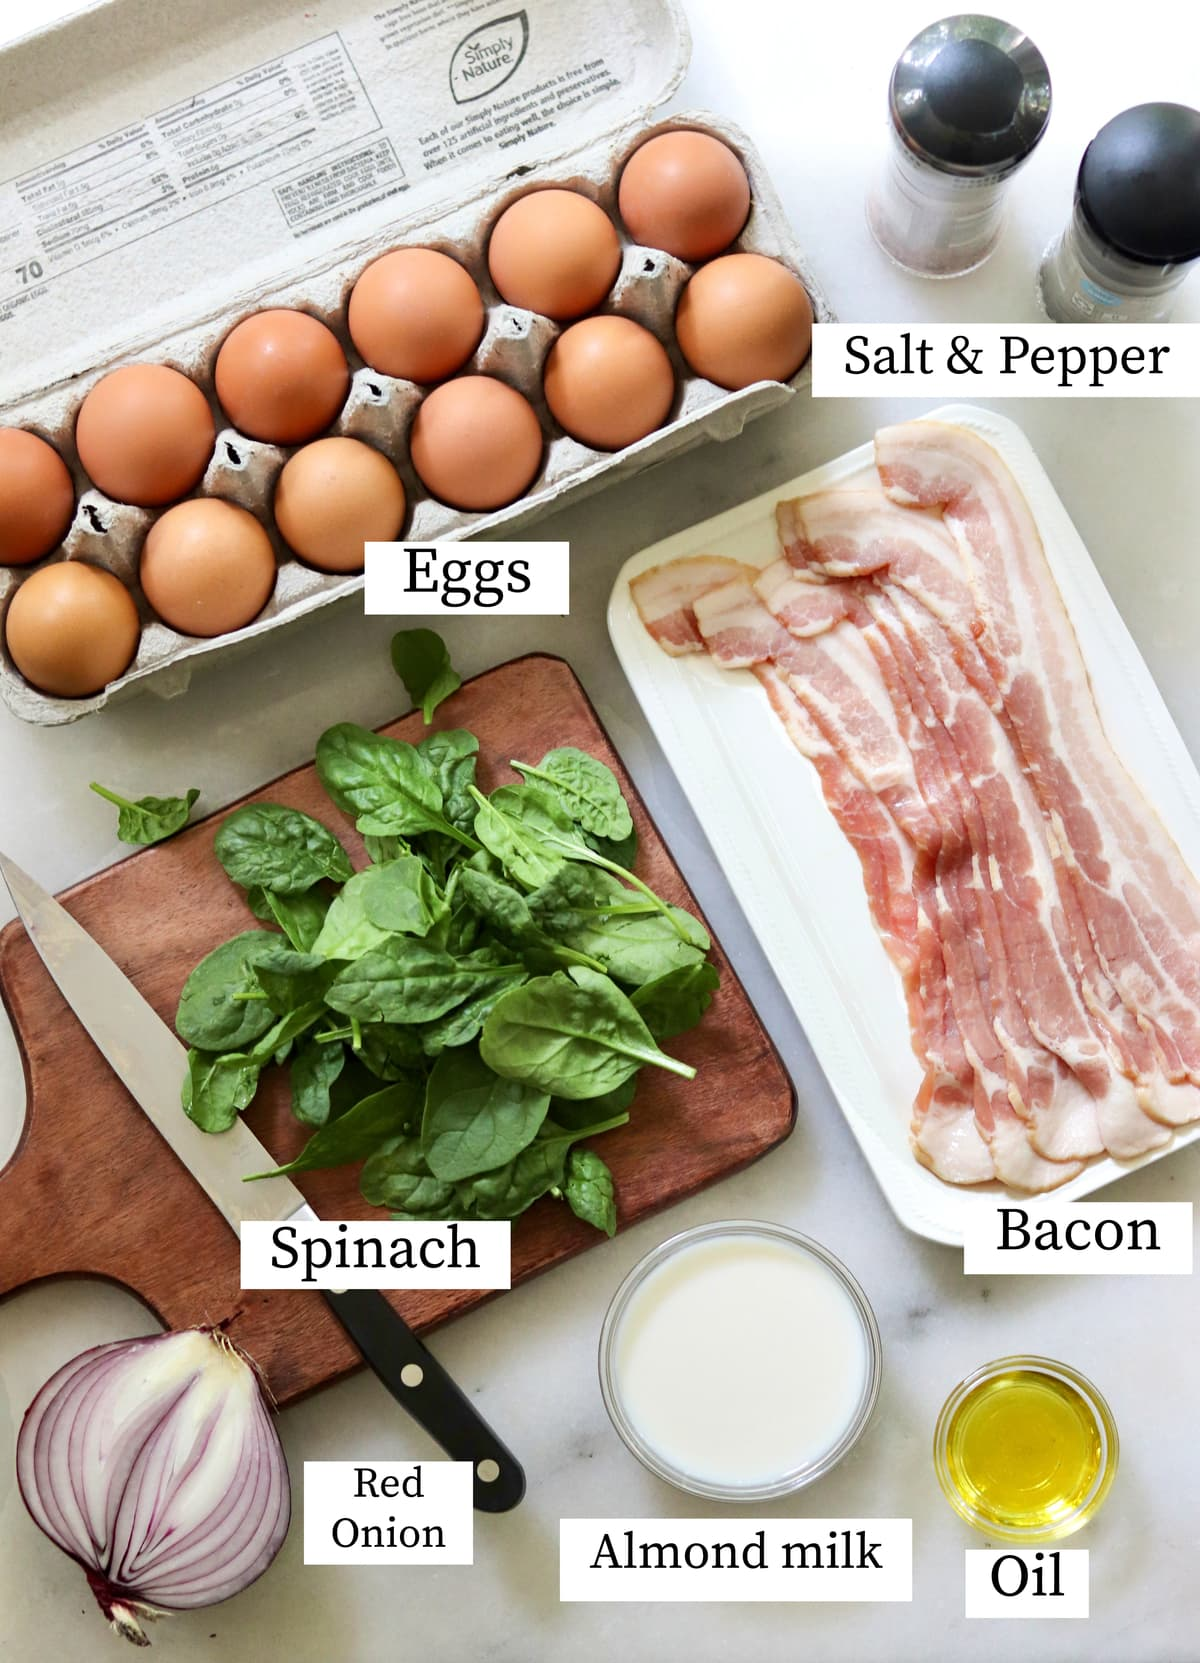 All of the recipe ingredients laid out separately and labeled: Eggs, spinach, bacon, onion, almond milk, oil, and salt and pepper.